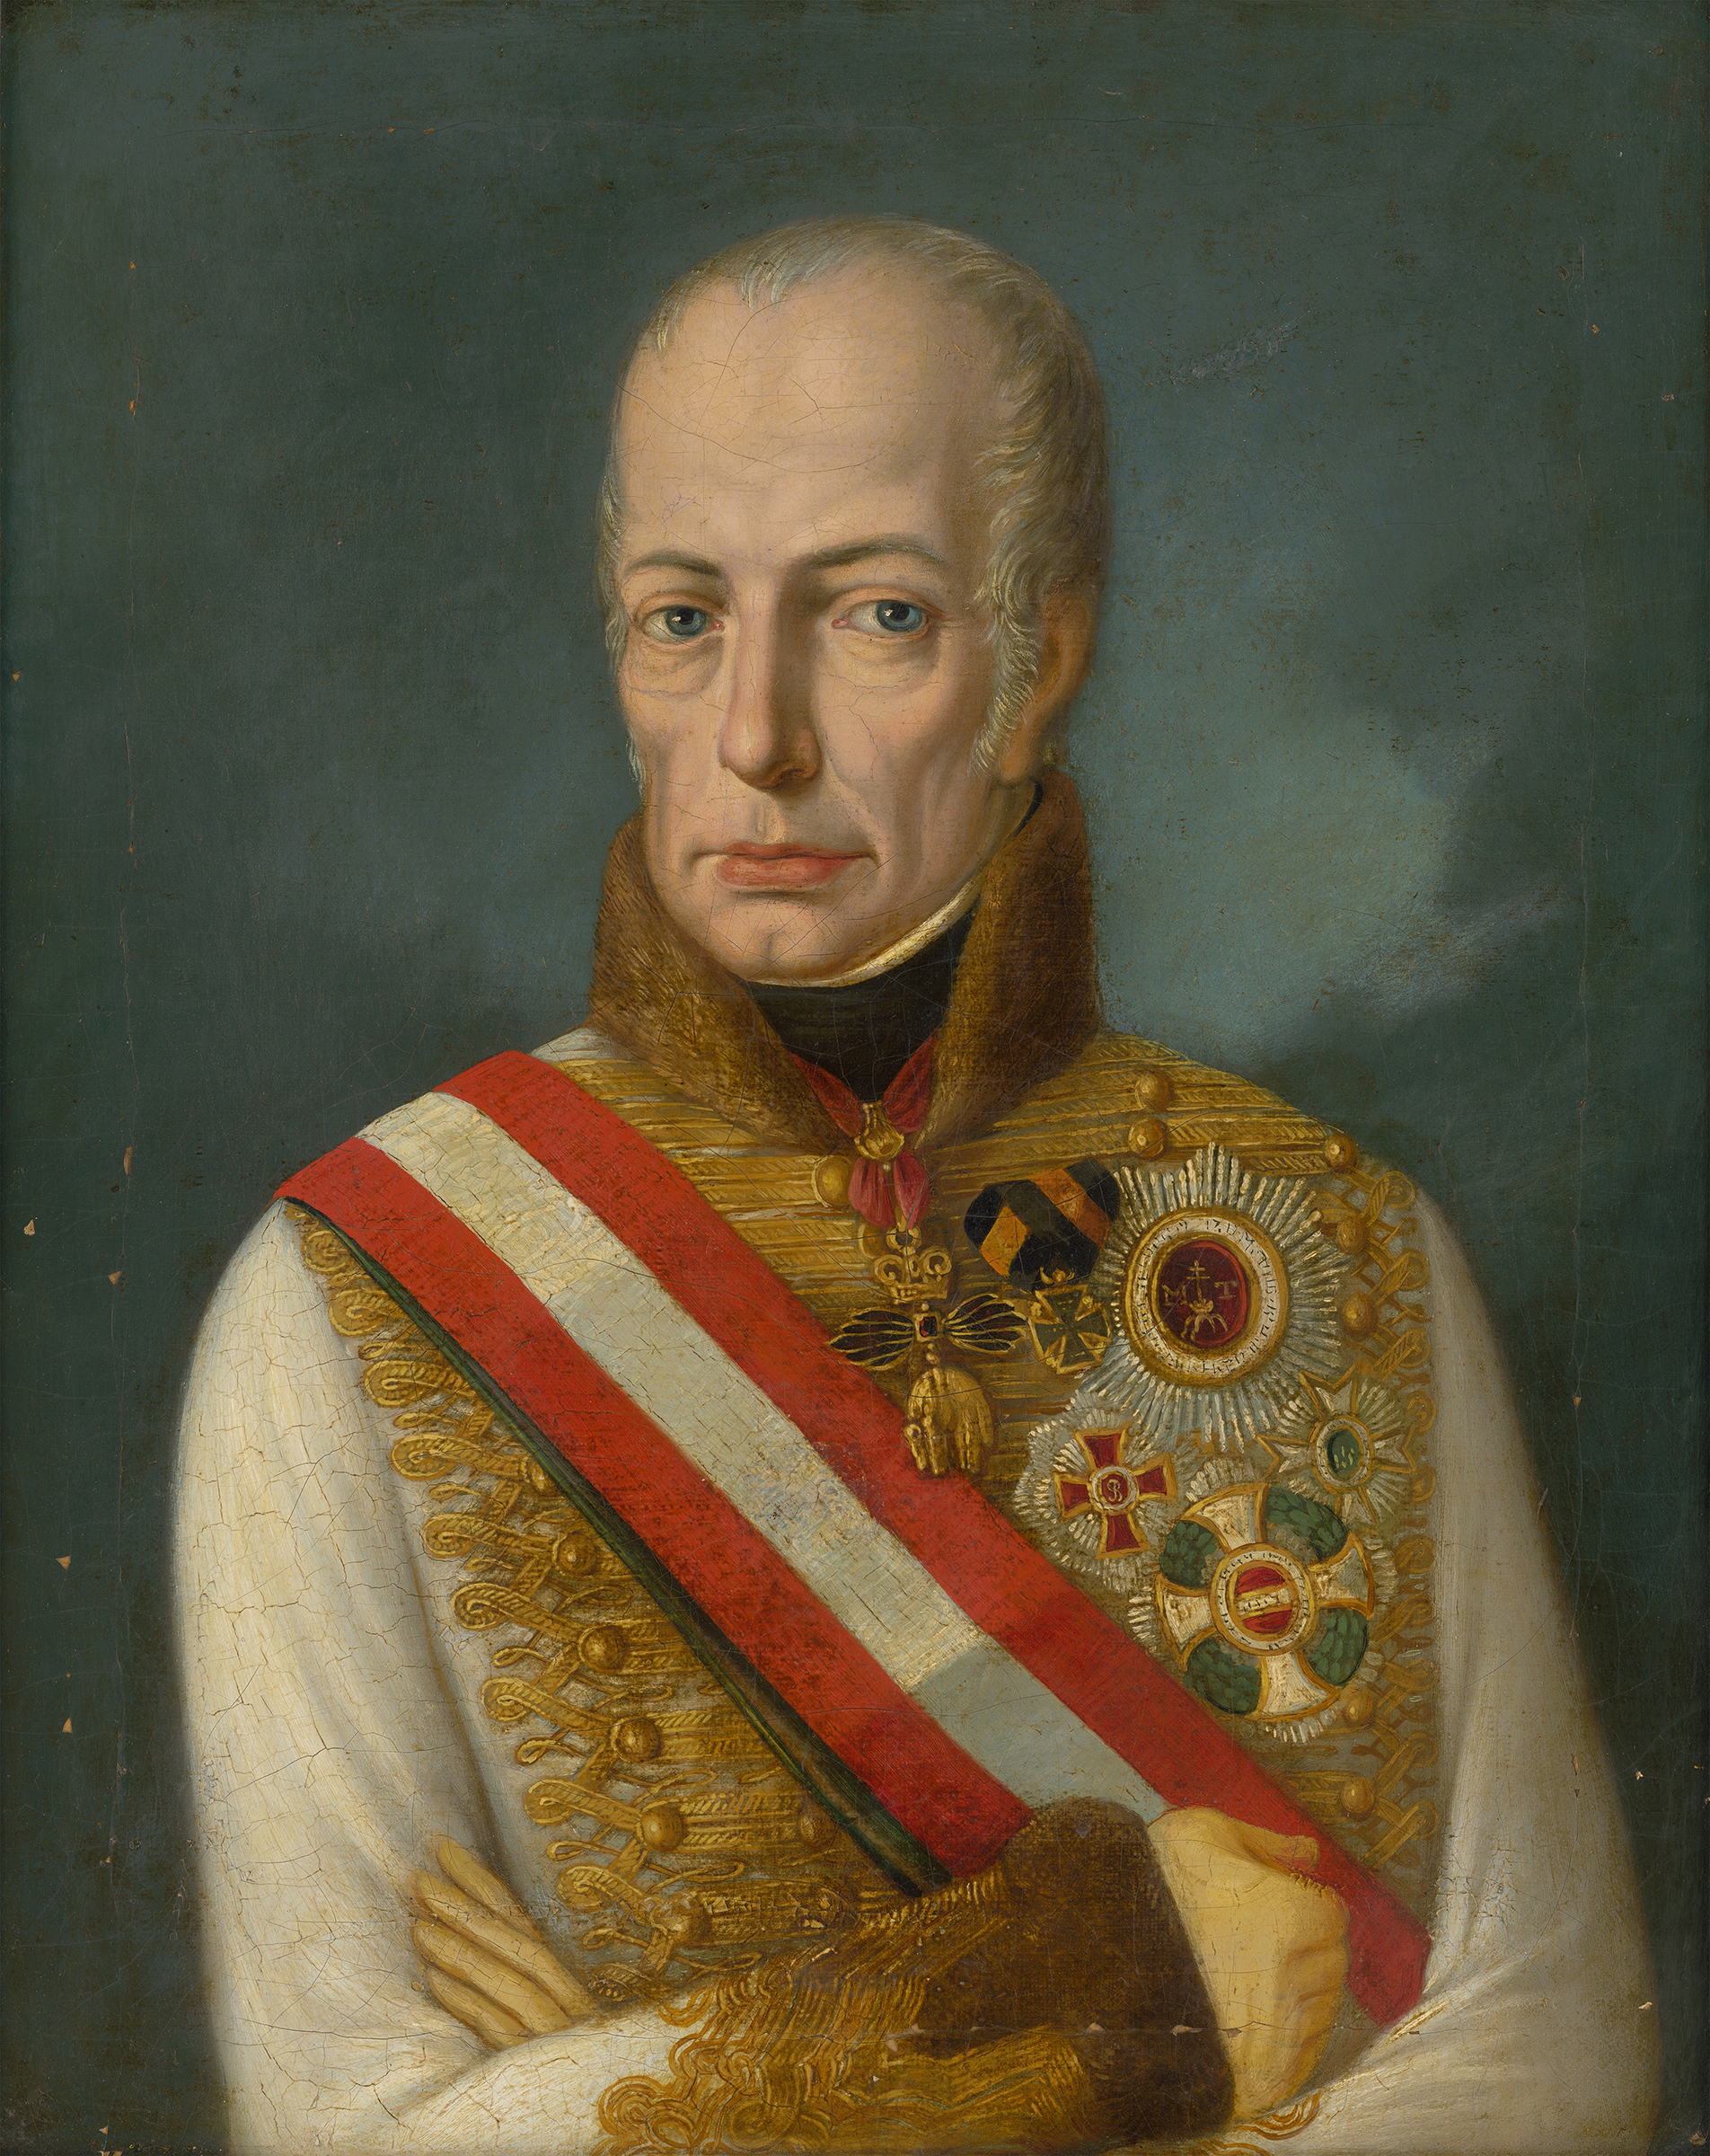 Portrait of Francis I (1768-1835), Emperor of Austria (1804-1835), Holy Roman Emperor (Francis II) from 1792 to 1806; King of Hungary and Bohemia (1792-1835), King of Lombardy-Venetia (1815-1835) | Portraits of Kings